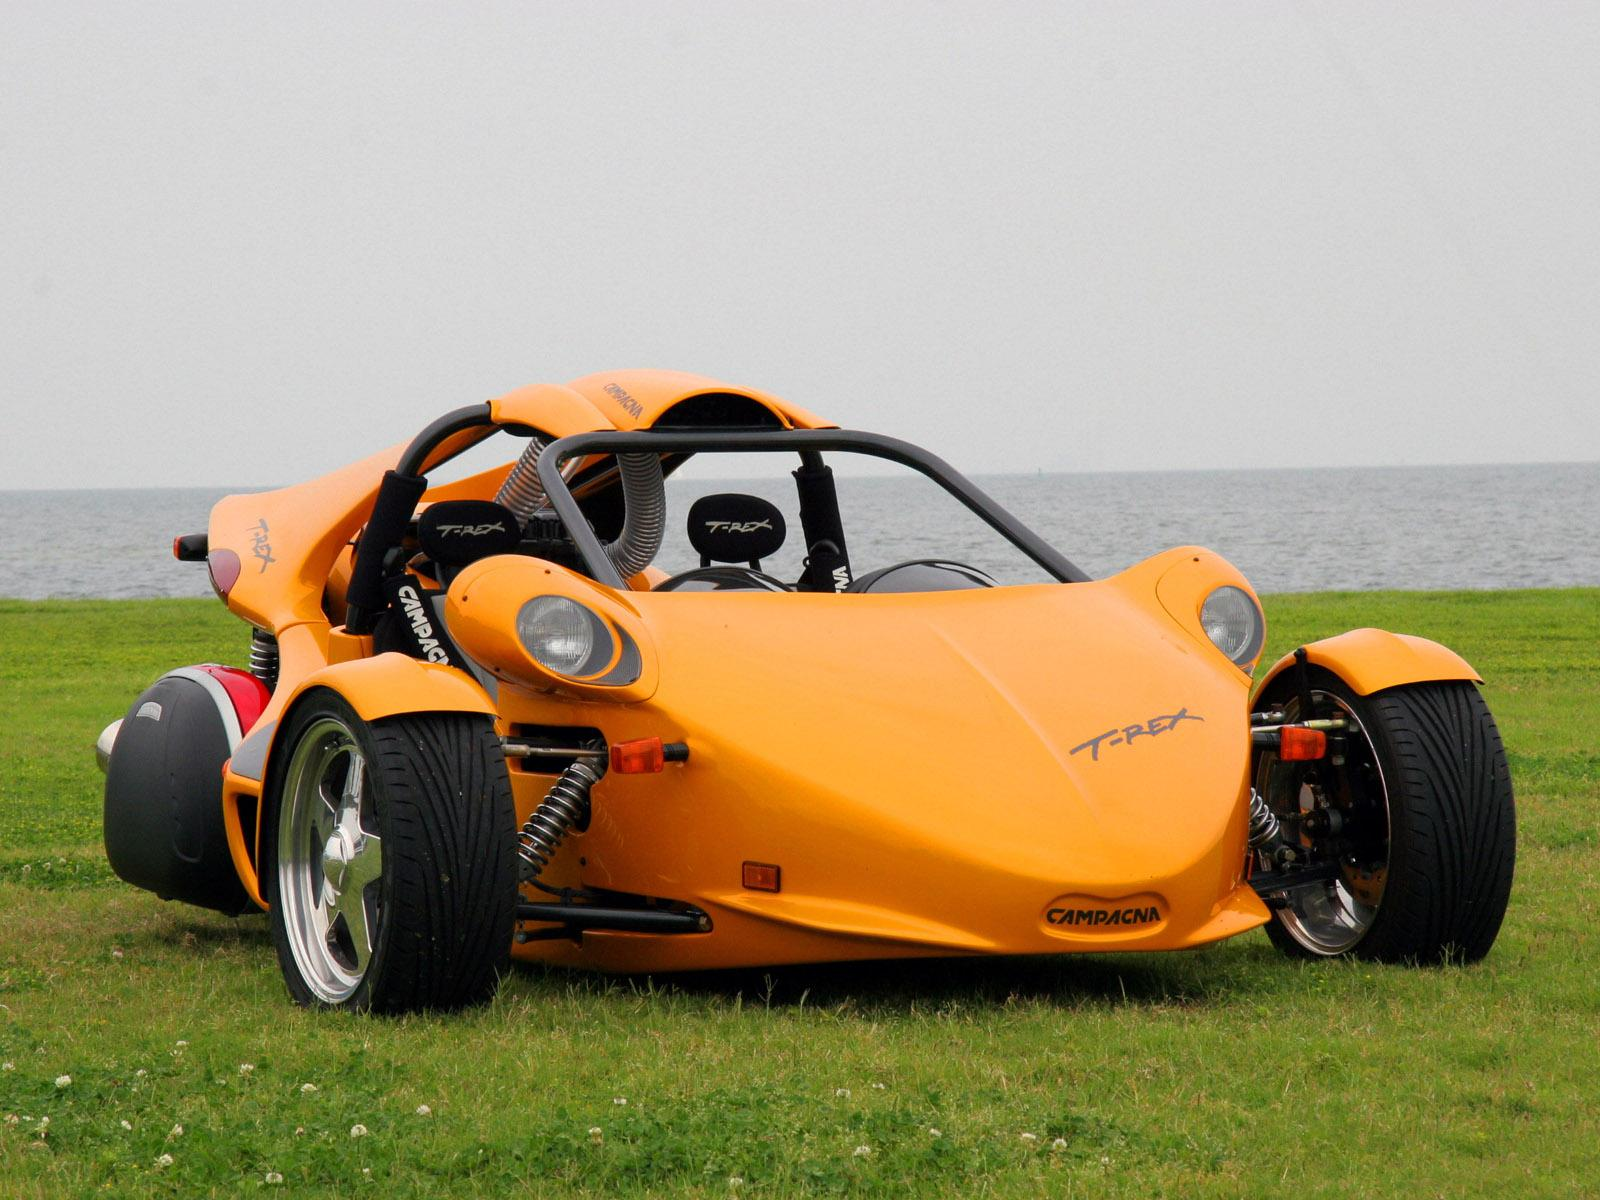 Campagna T Rex Photos Photogallery With 15 Pics